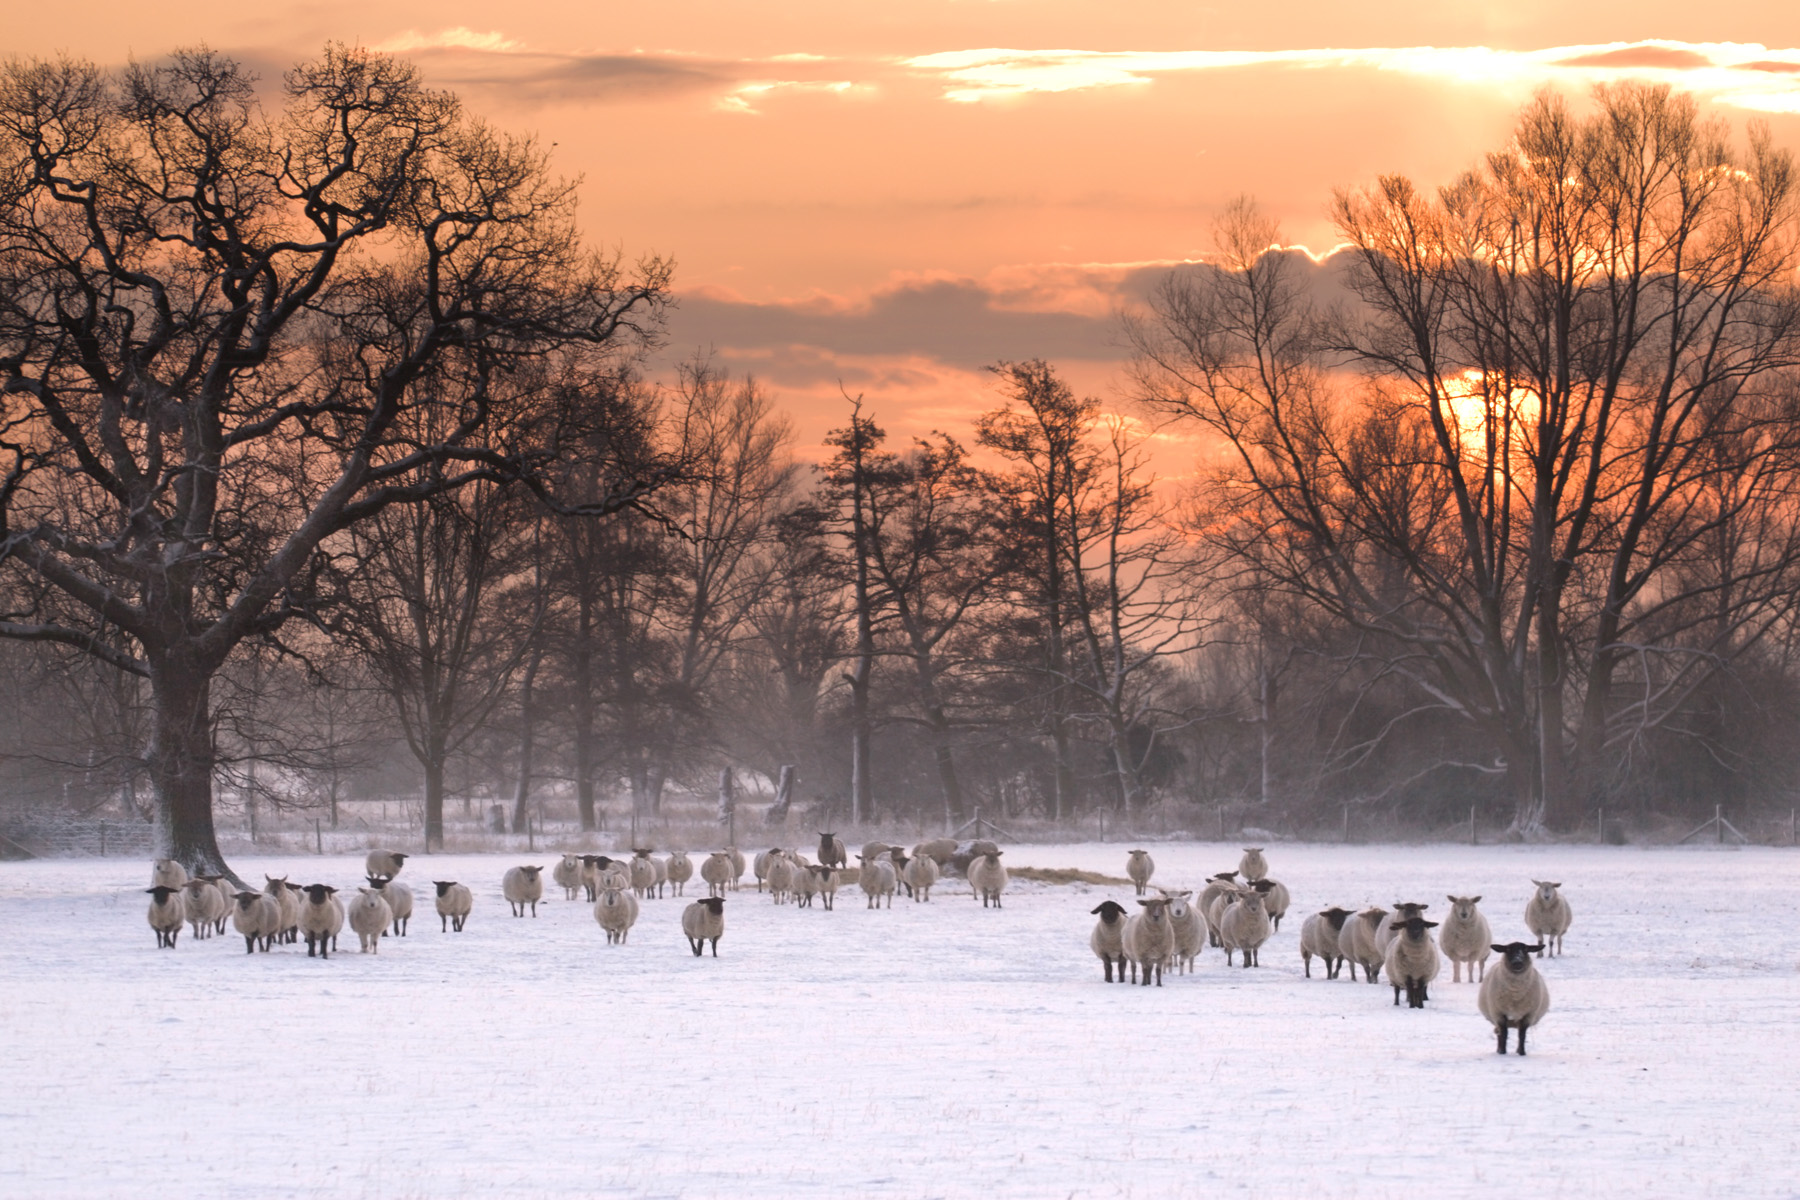 Sheep in the snow, Suffolk. Canon 30D, Canon 70-200mm f/4 at 109mm, ISO 100, 1/320s at f/4, Handheld. © Justin Minns